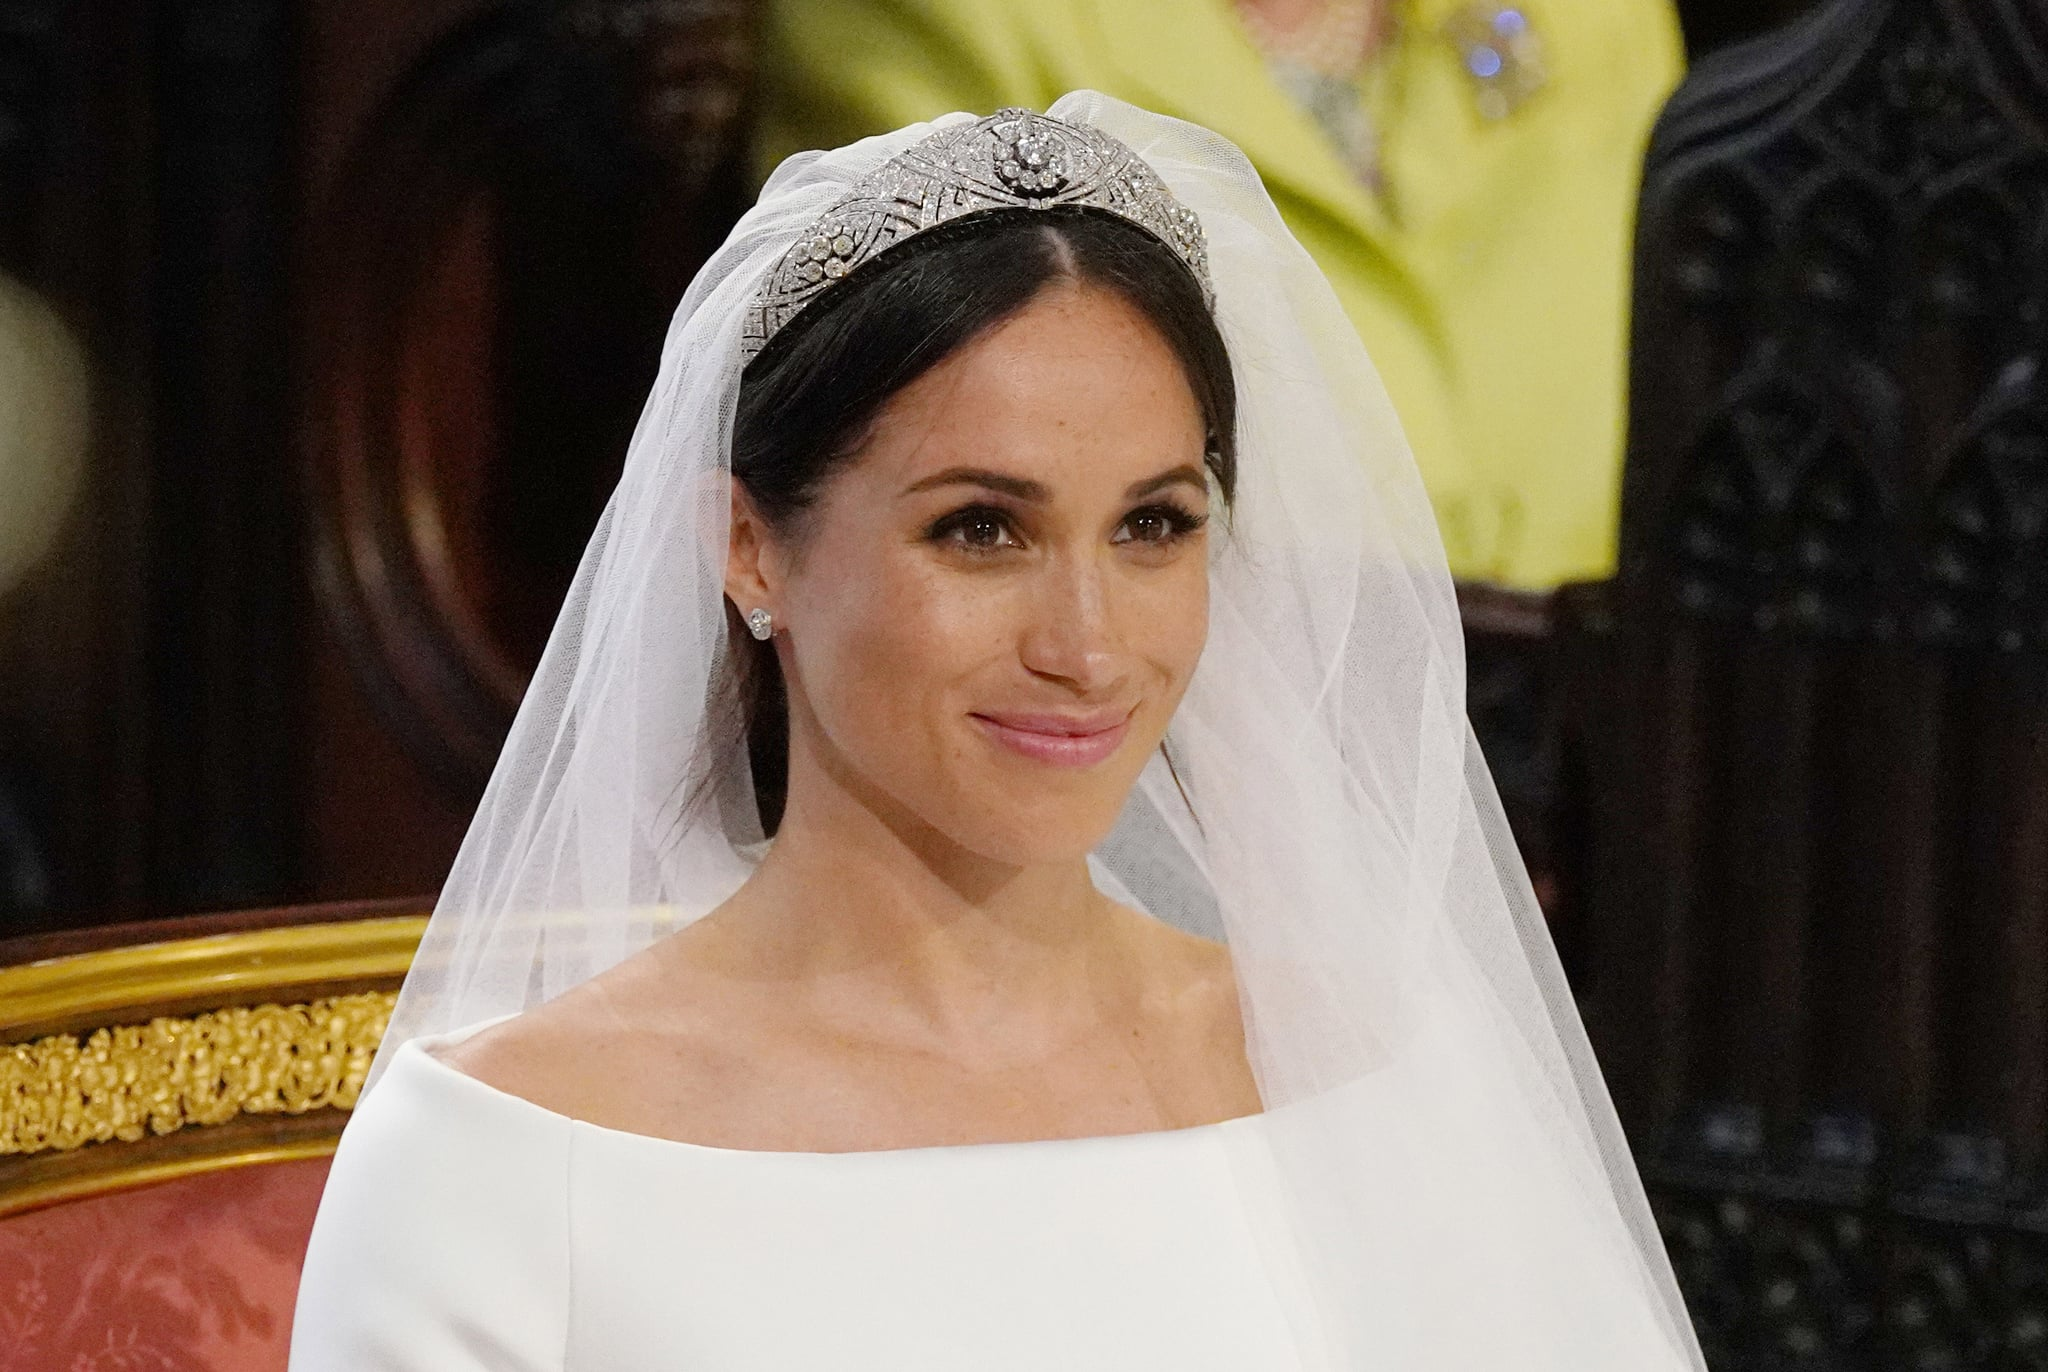 WINDSOR, UNITED KINGDOM - MAY 19: Meghan Markle stands at the altar during her wedding in St George